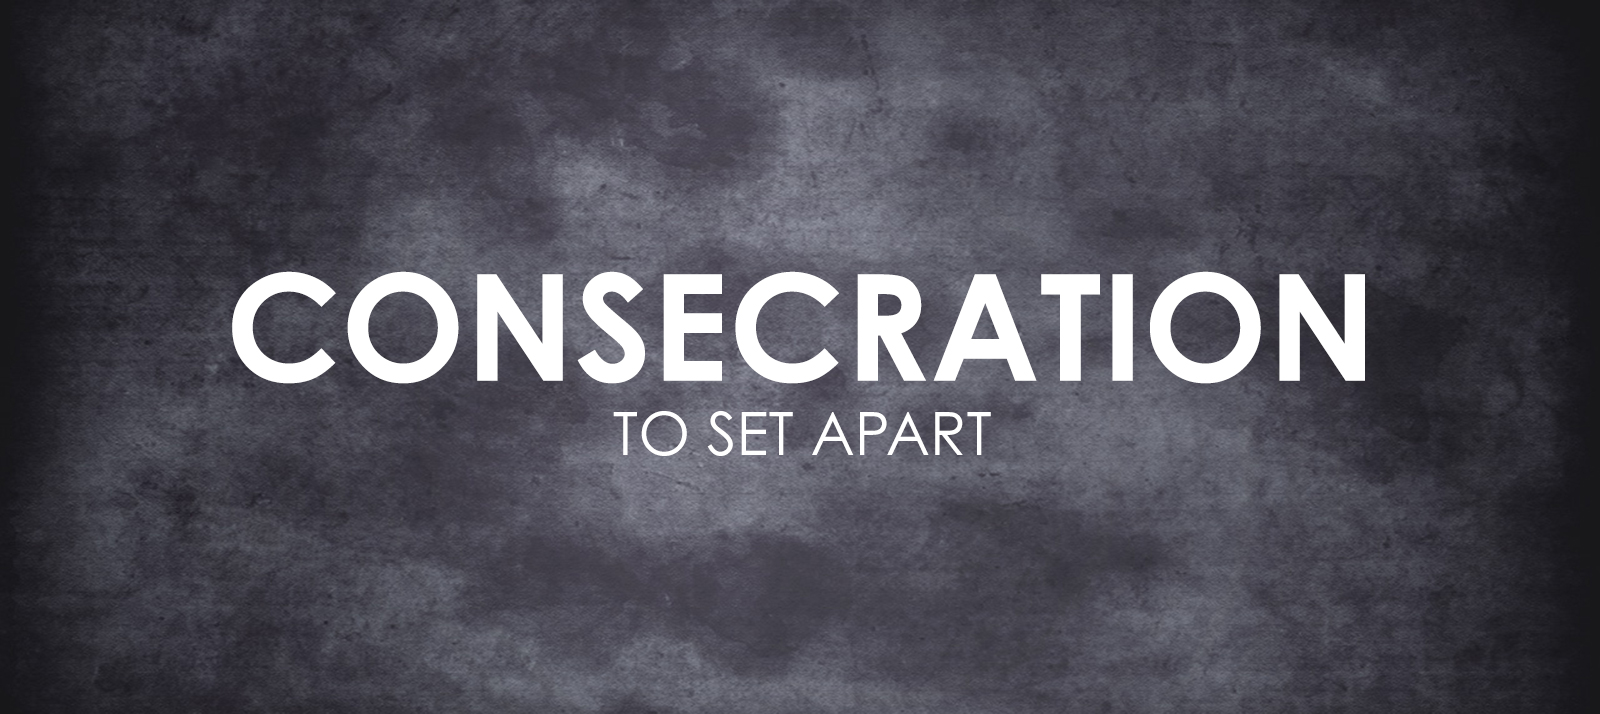 Consecration for Spiritual Growth